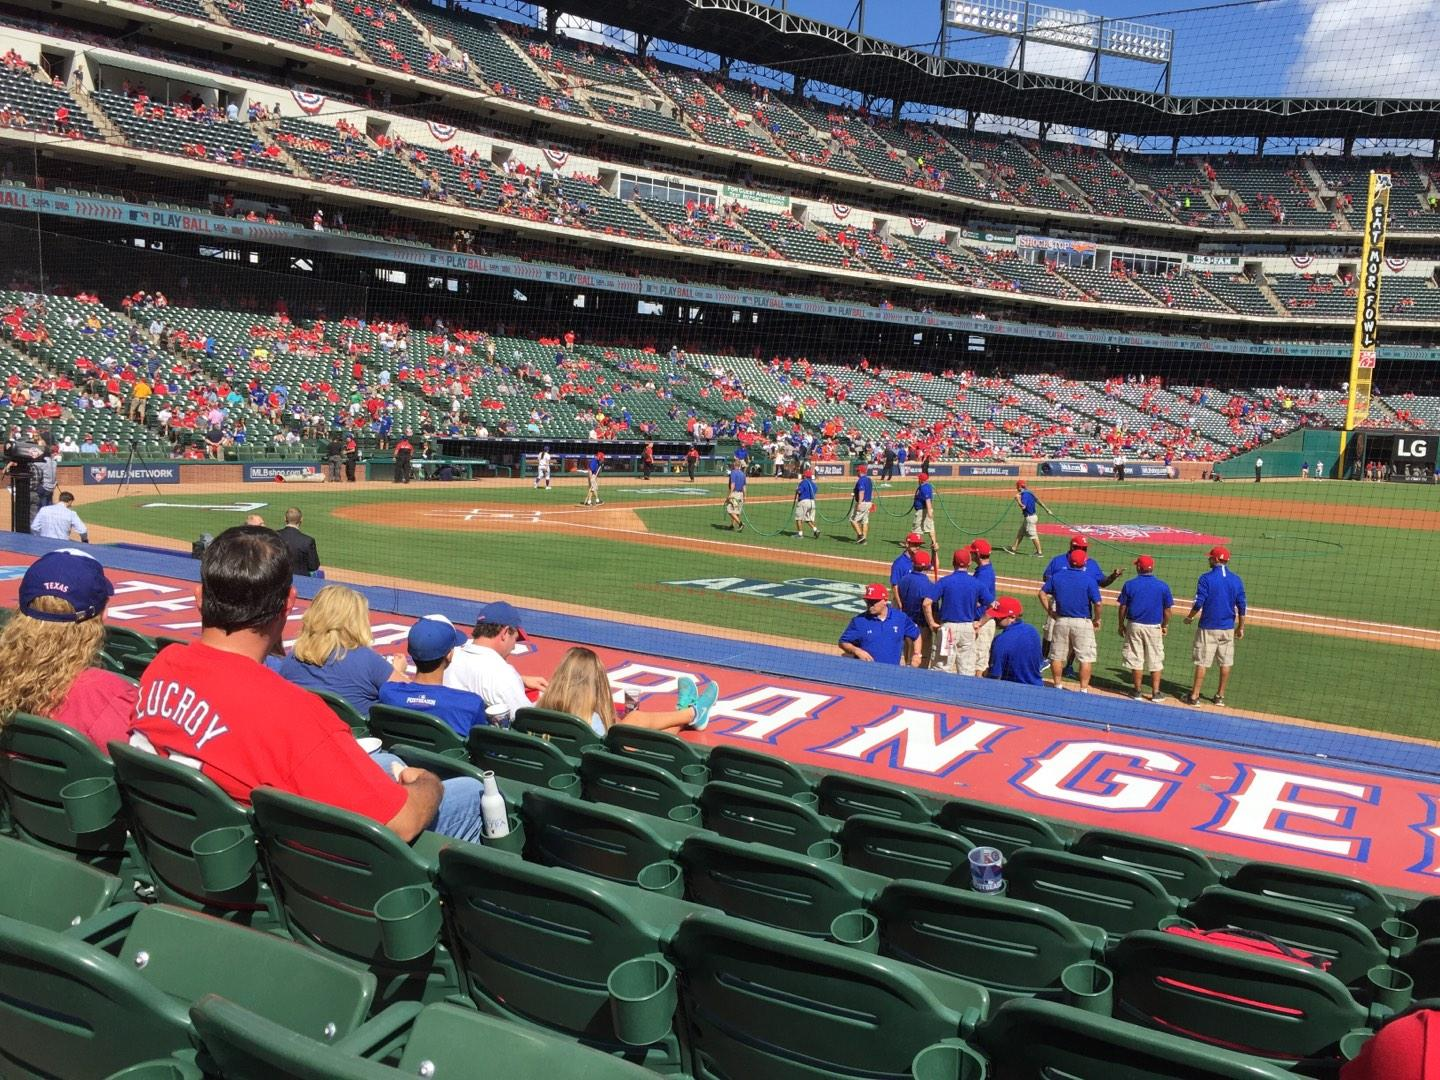 Globe Life Park in Arlington Section 33 Row 9 Seat 15